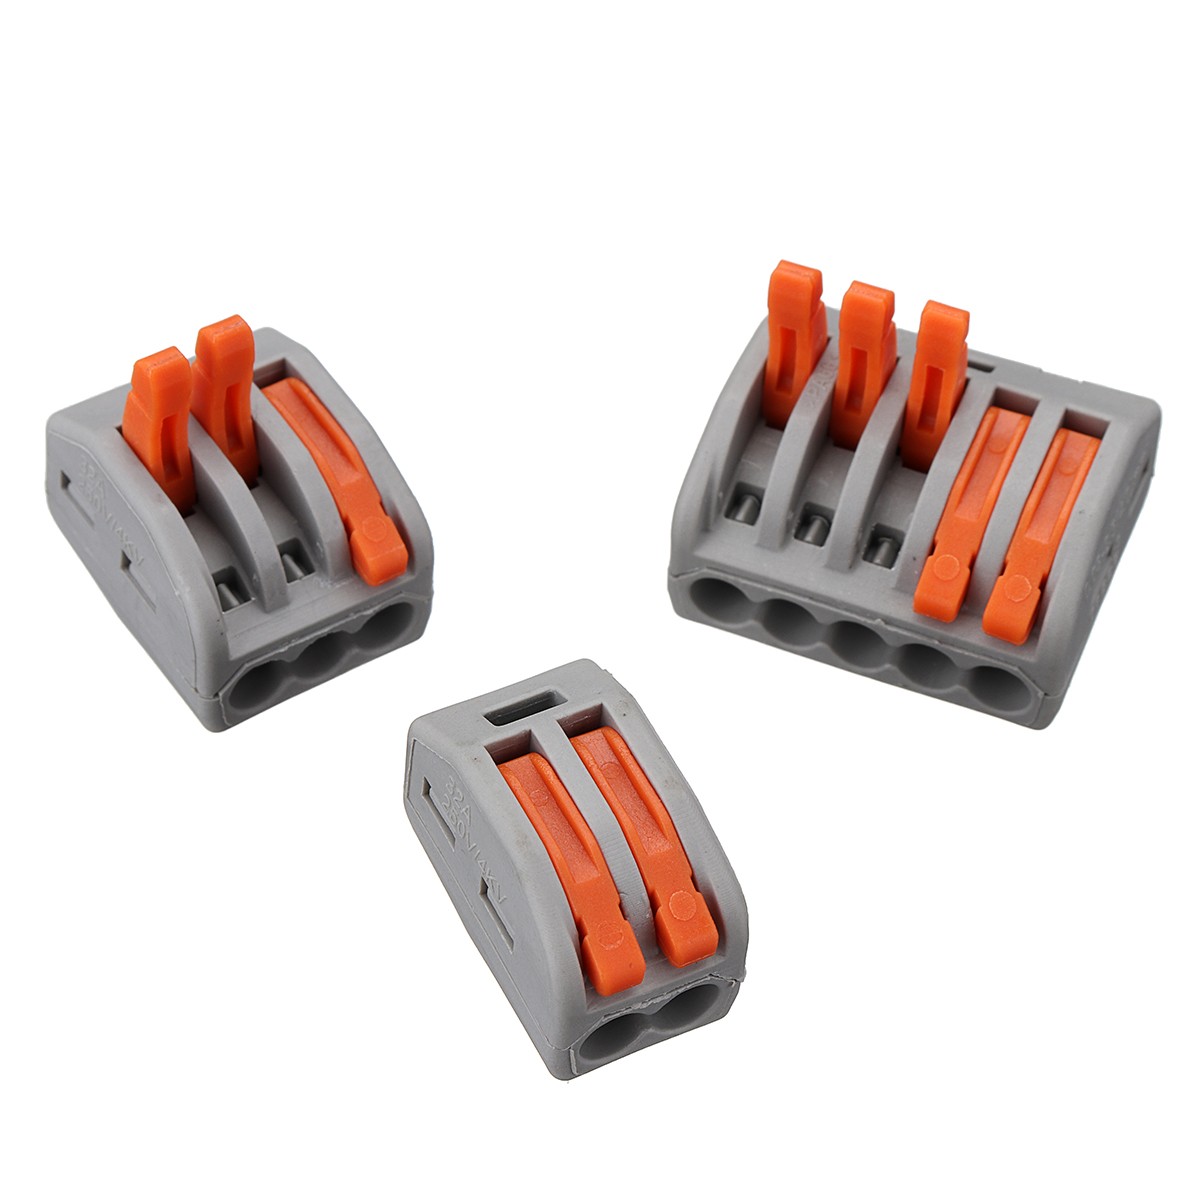 Excellway® 60Pcs 2/3/5 Holes Spring Conductor Terminal Block Electric Cable Wire Connector